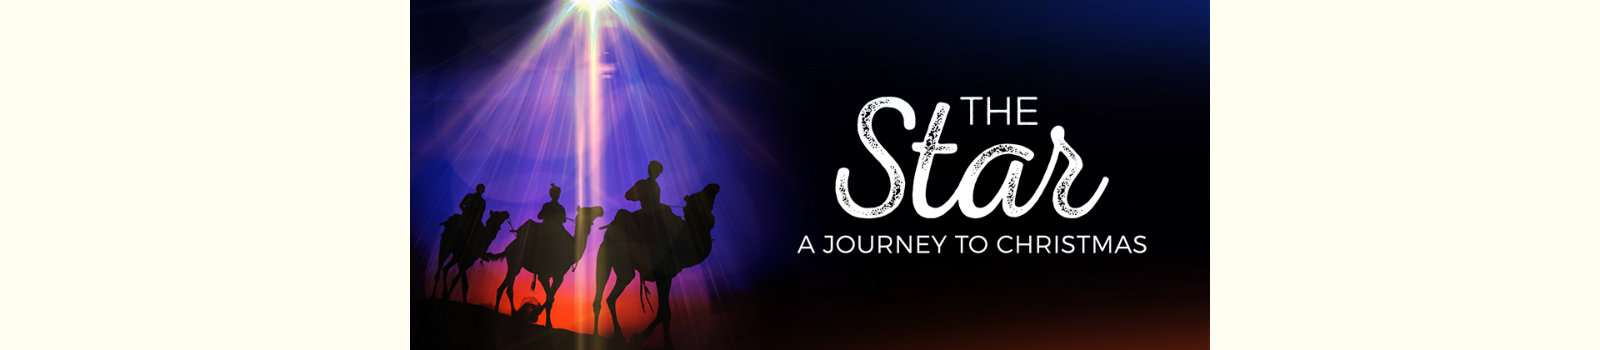 Join us on an unforgettable journey this season to experience Hope, Love, Joy, and Peace